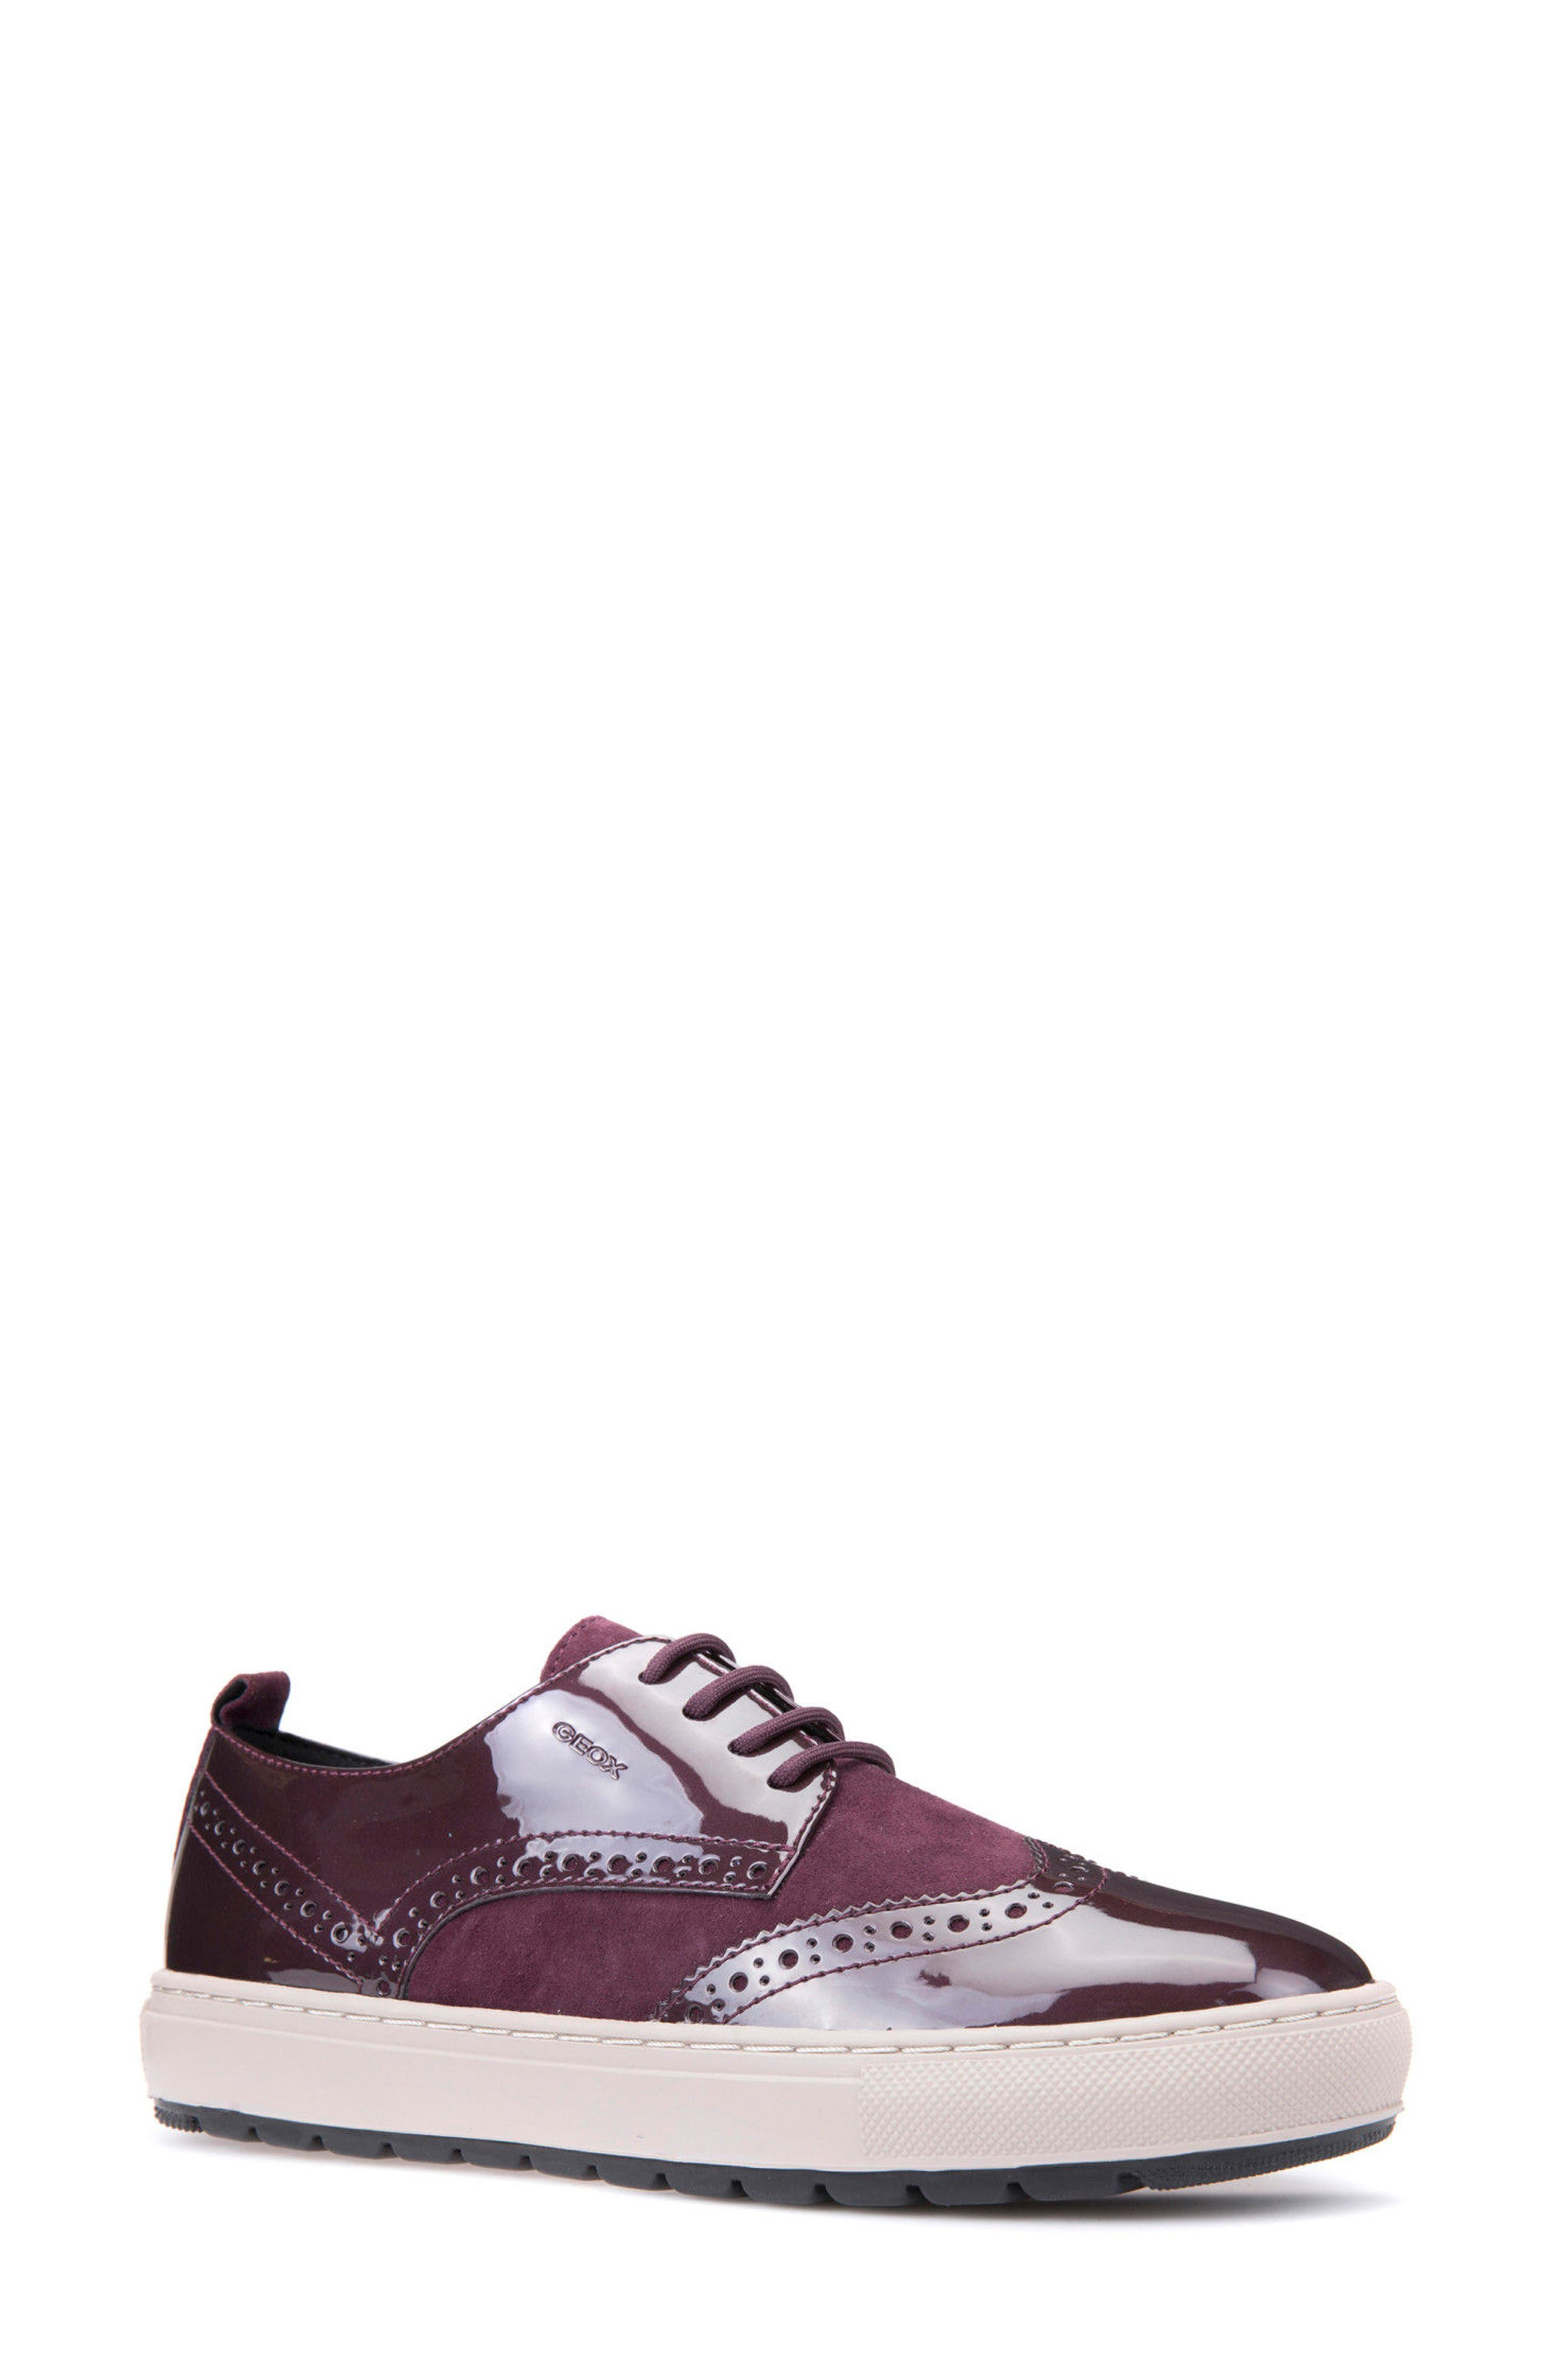 Alternate Image 1 Selected - Geox Breeda Oxford Sneaker (Women)